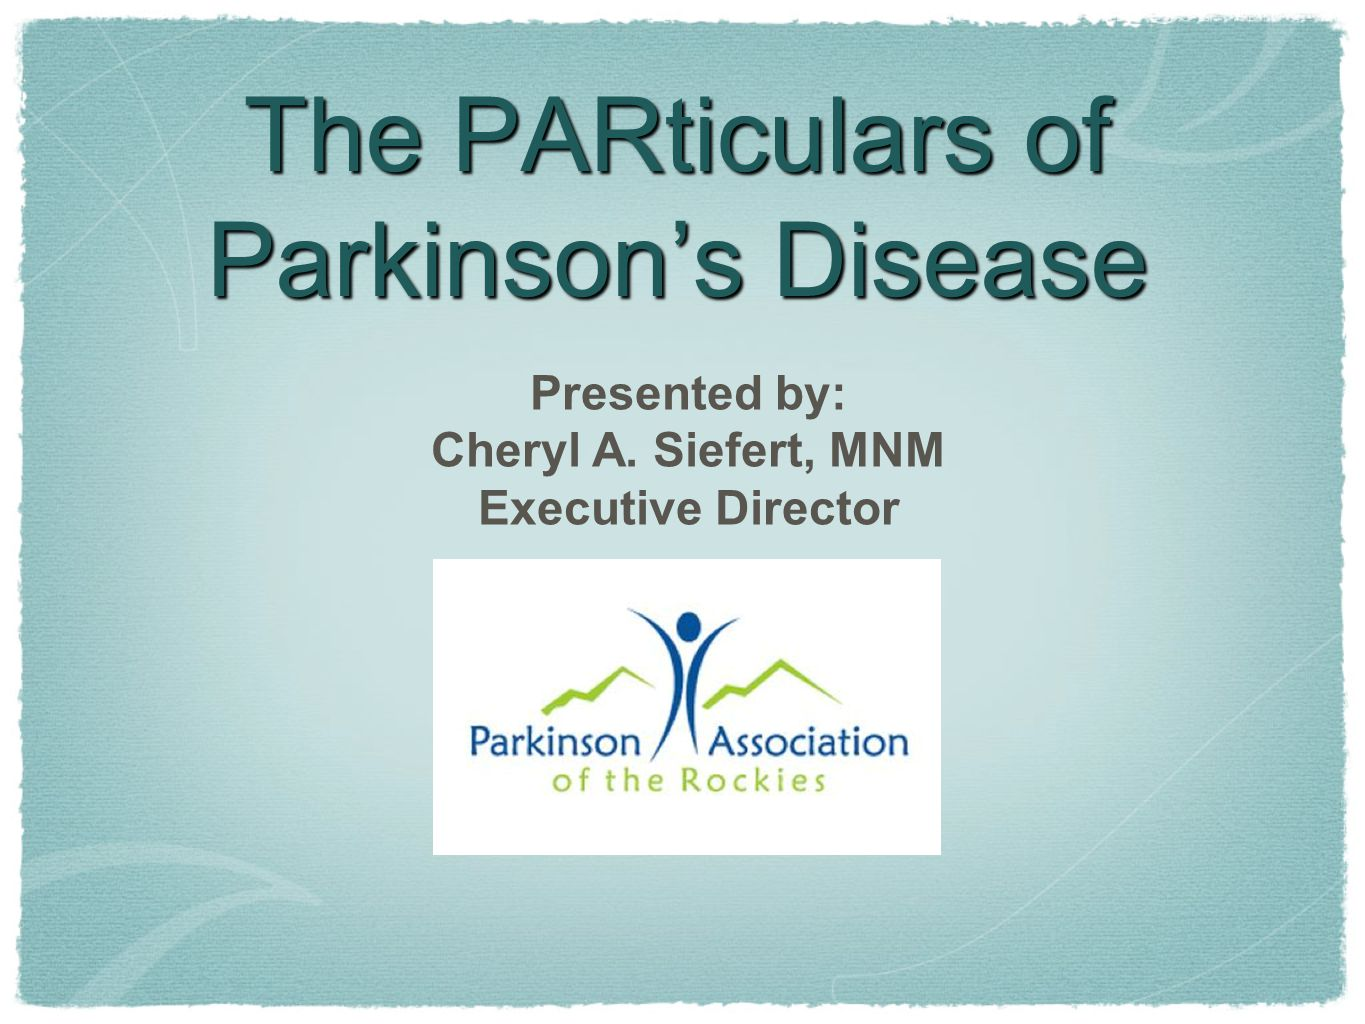 The PARticulars of Parkinson's Disease Presented by: Cheryl A. Siefert, MNM Executive Director